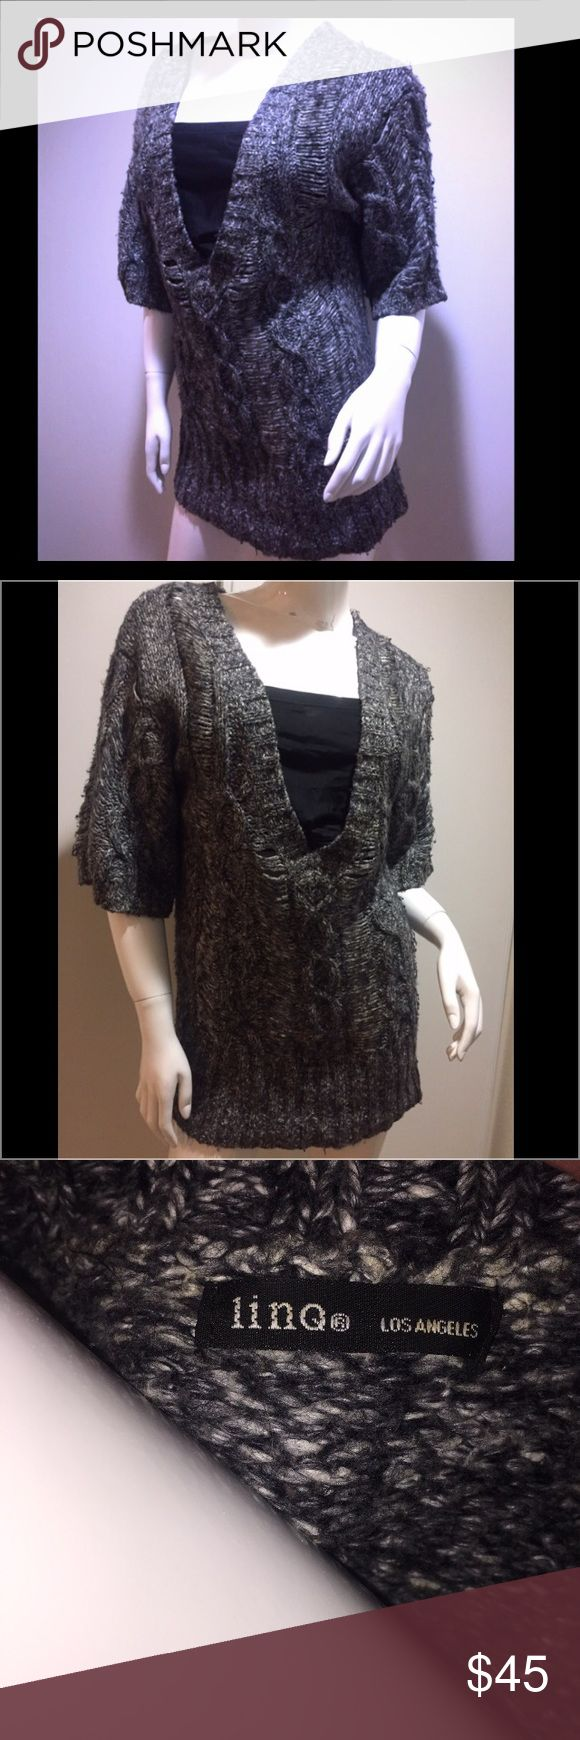 Linq Los Angeles thick S/S Lrg-knit sweater/tunic Beautiful & Unique. From the 1/2 sleeves to the longer style, the large knit style that appears heavy but feels light as a feather, this low elongated neck sweater/tunic is stunning. Photos do not capture the chic style or do this beauty justice! The material is a salt & peppered black & white with overall gray look. Very well made & goes with everything due. Don't miss this HTF piece for your wardrobe! Can be worn when it's winter with a…